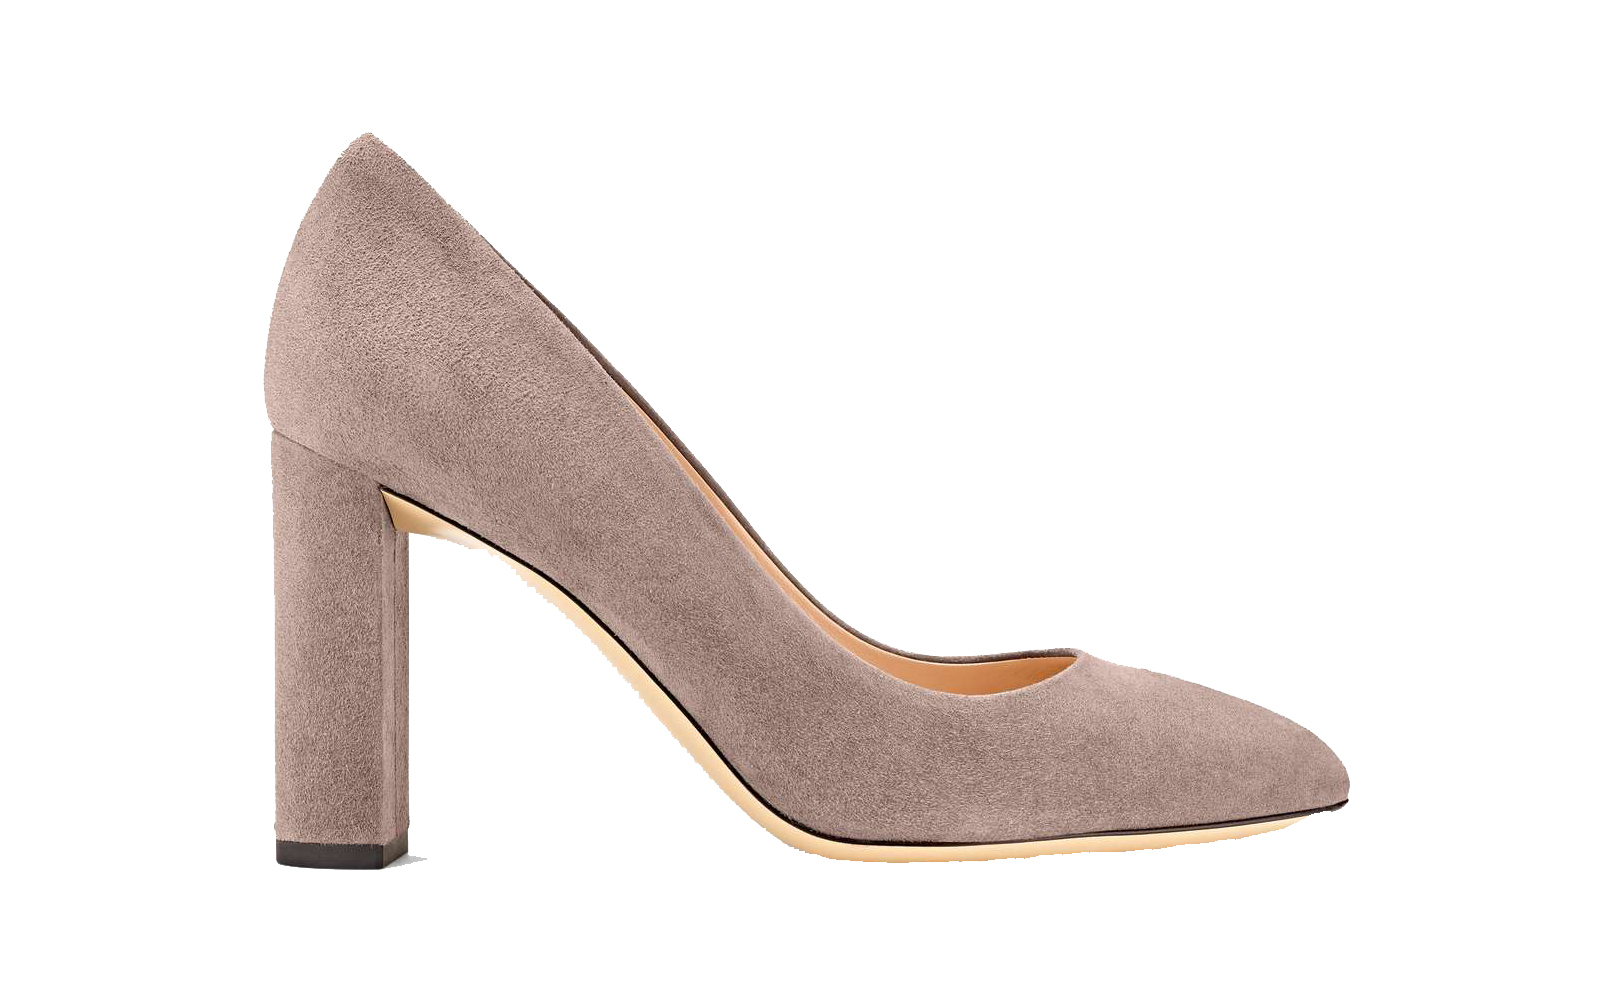 298dd8340fc57 The 13 Most Comfortable Heels for 2019, According to Reviews ...